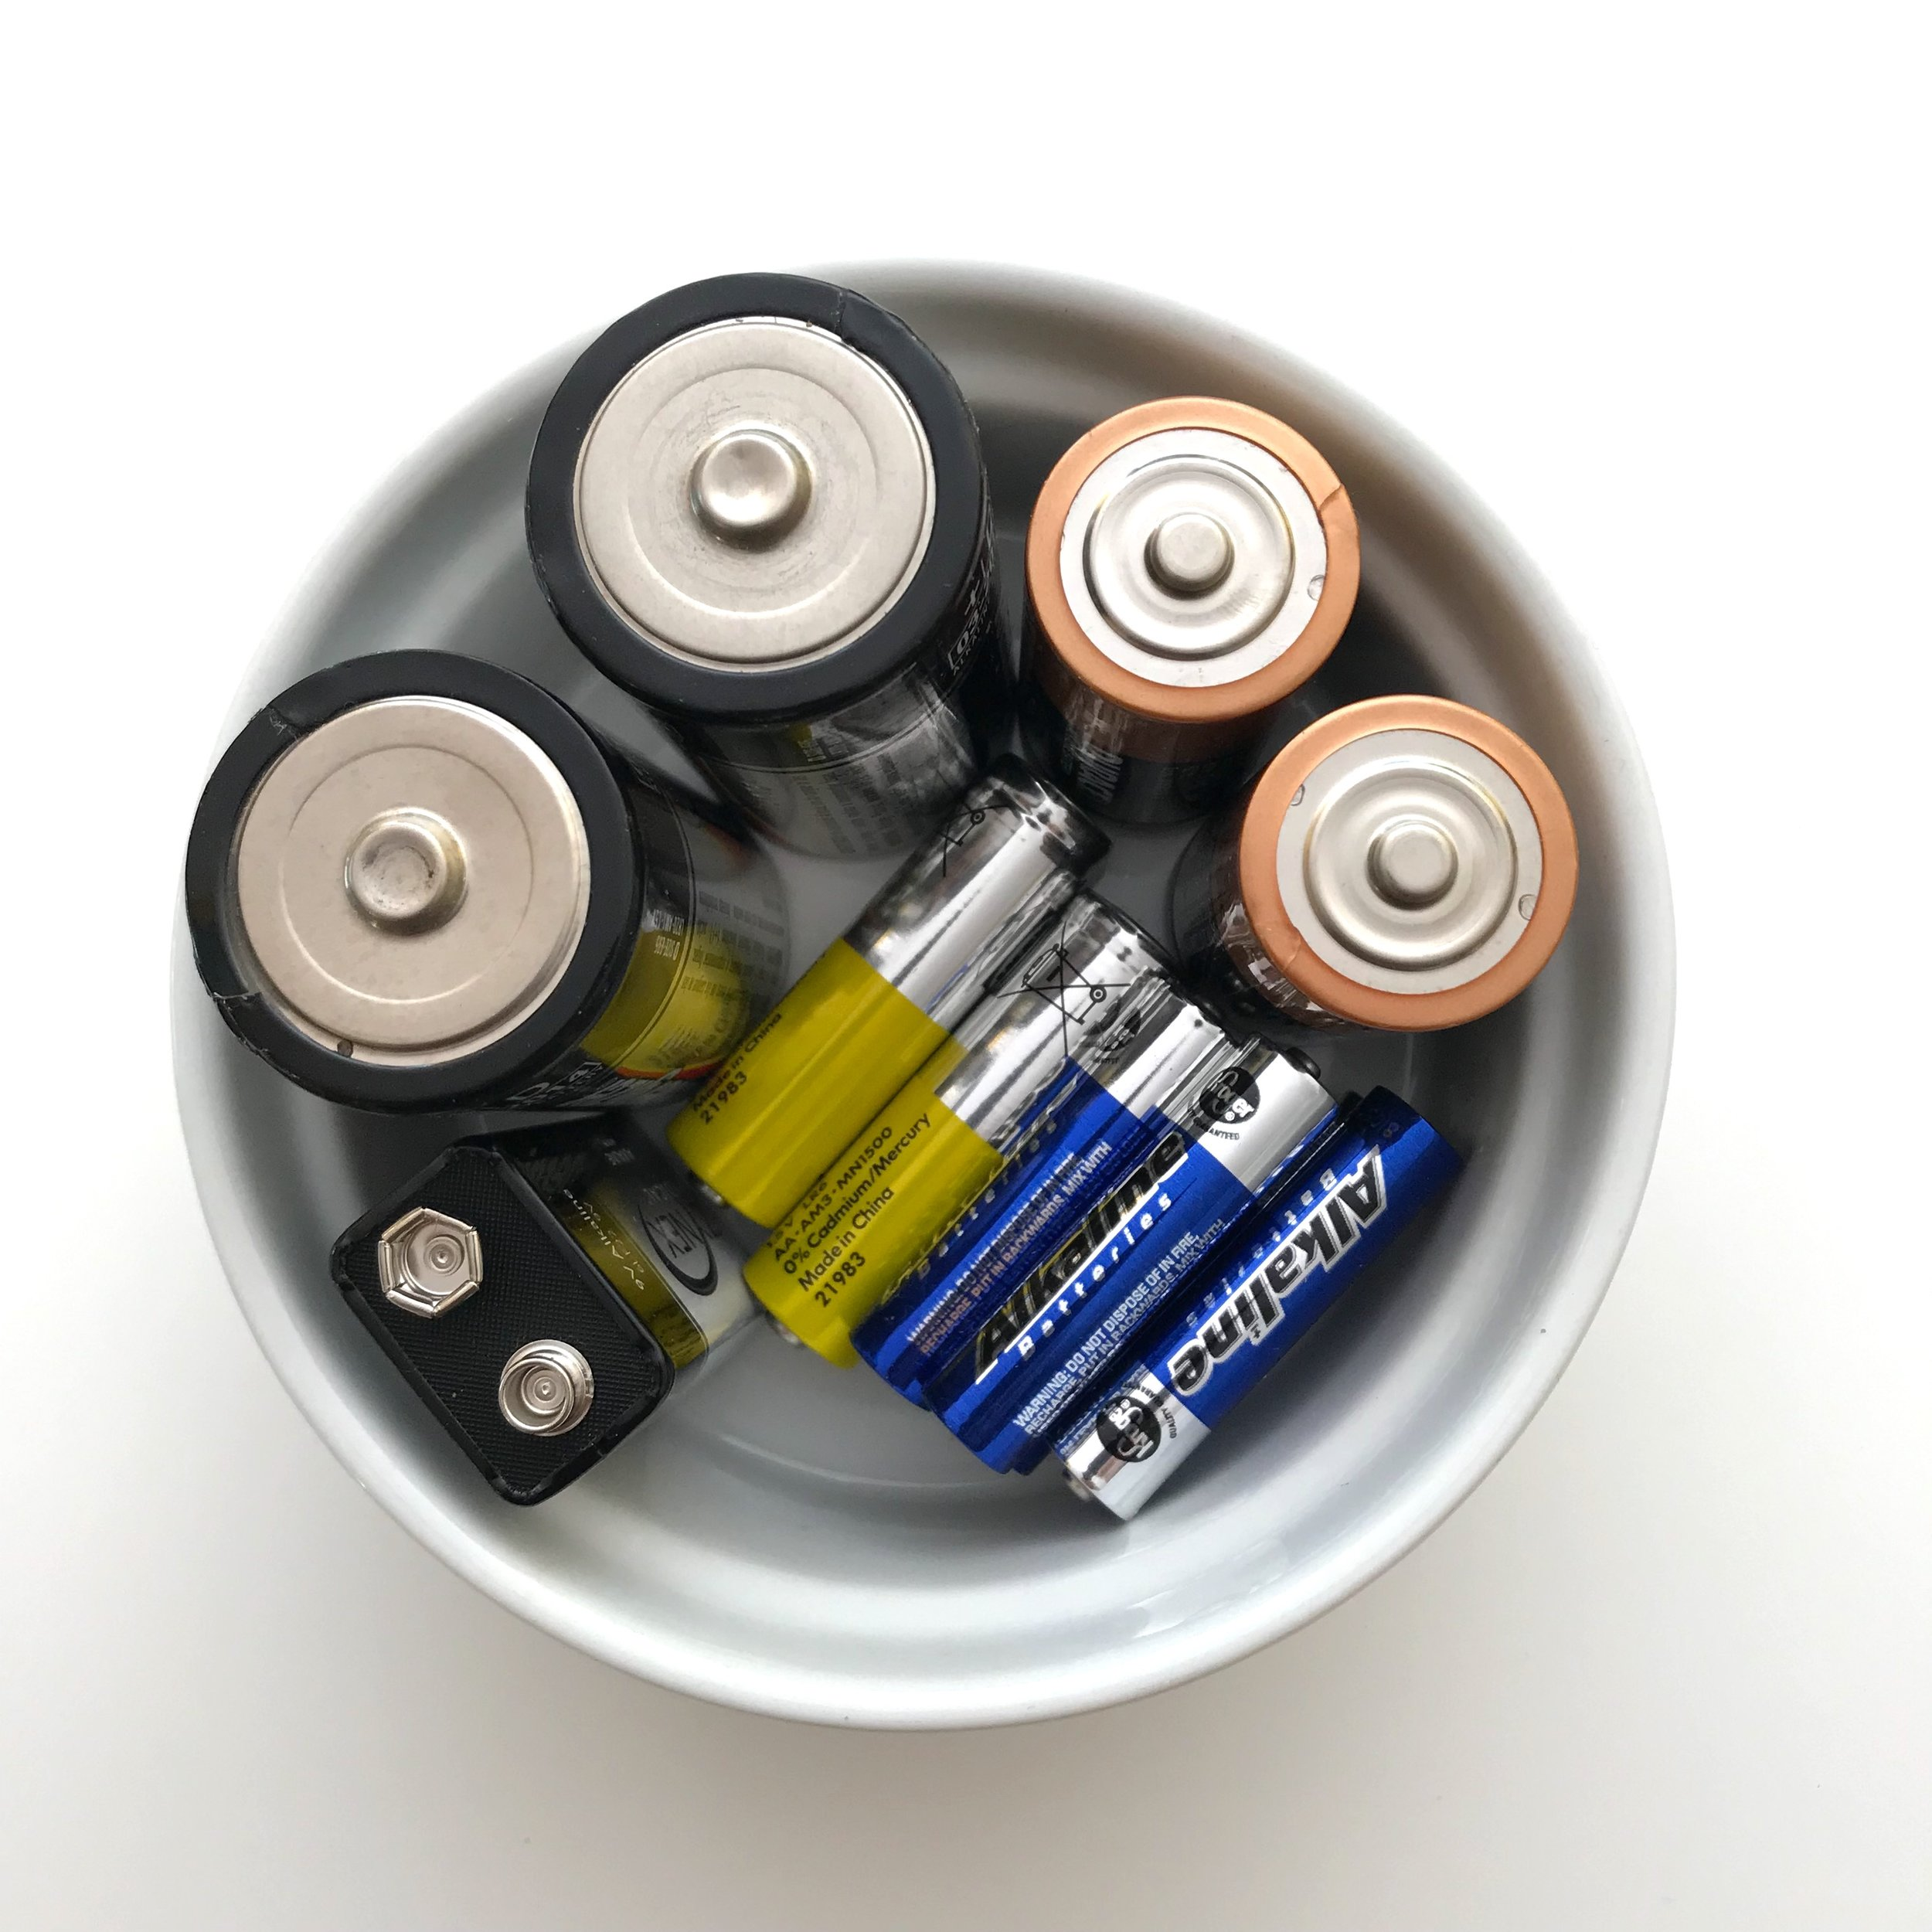 batteries in a ramekin